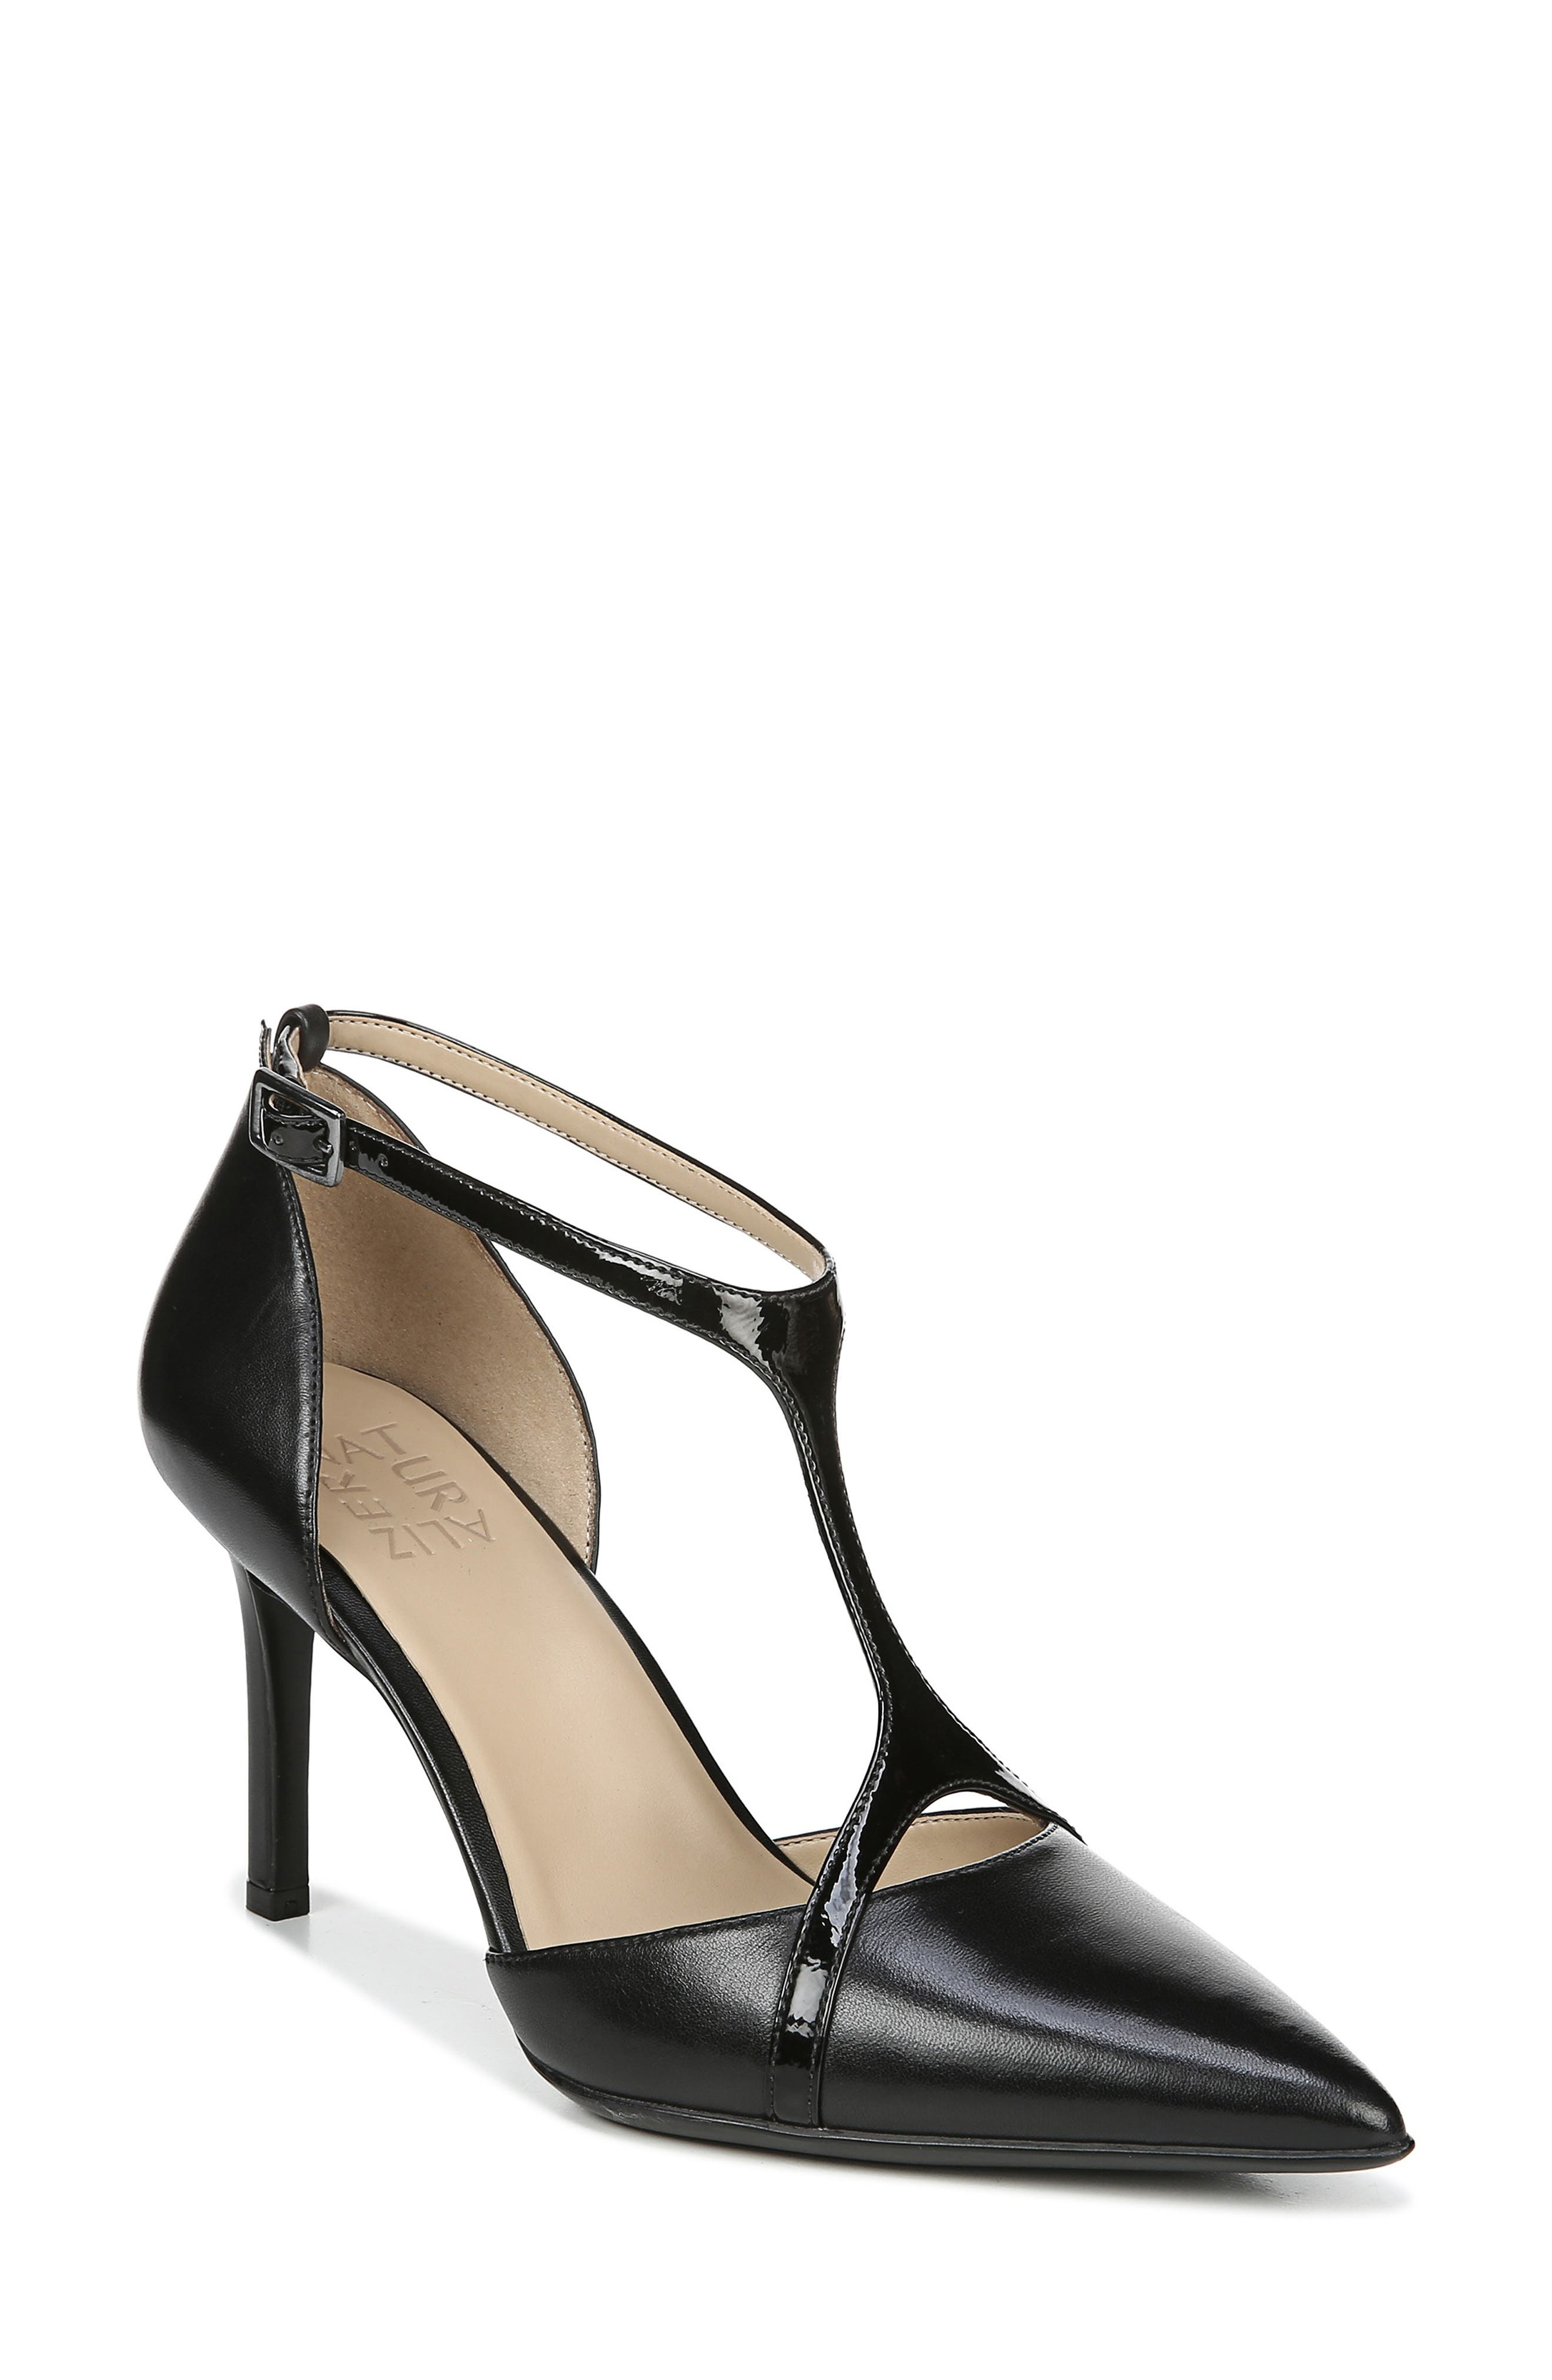 Naturalizer Andrea Pump, Black